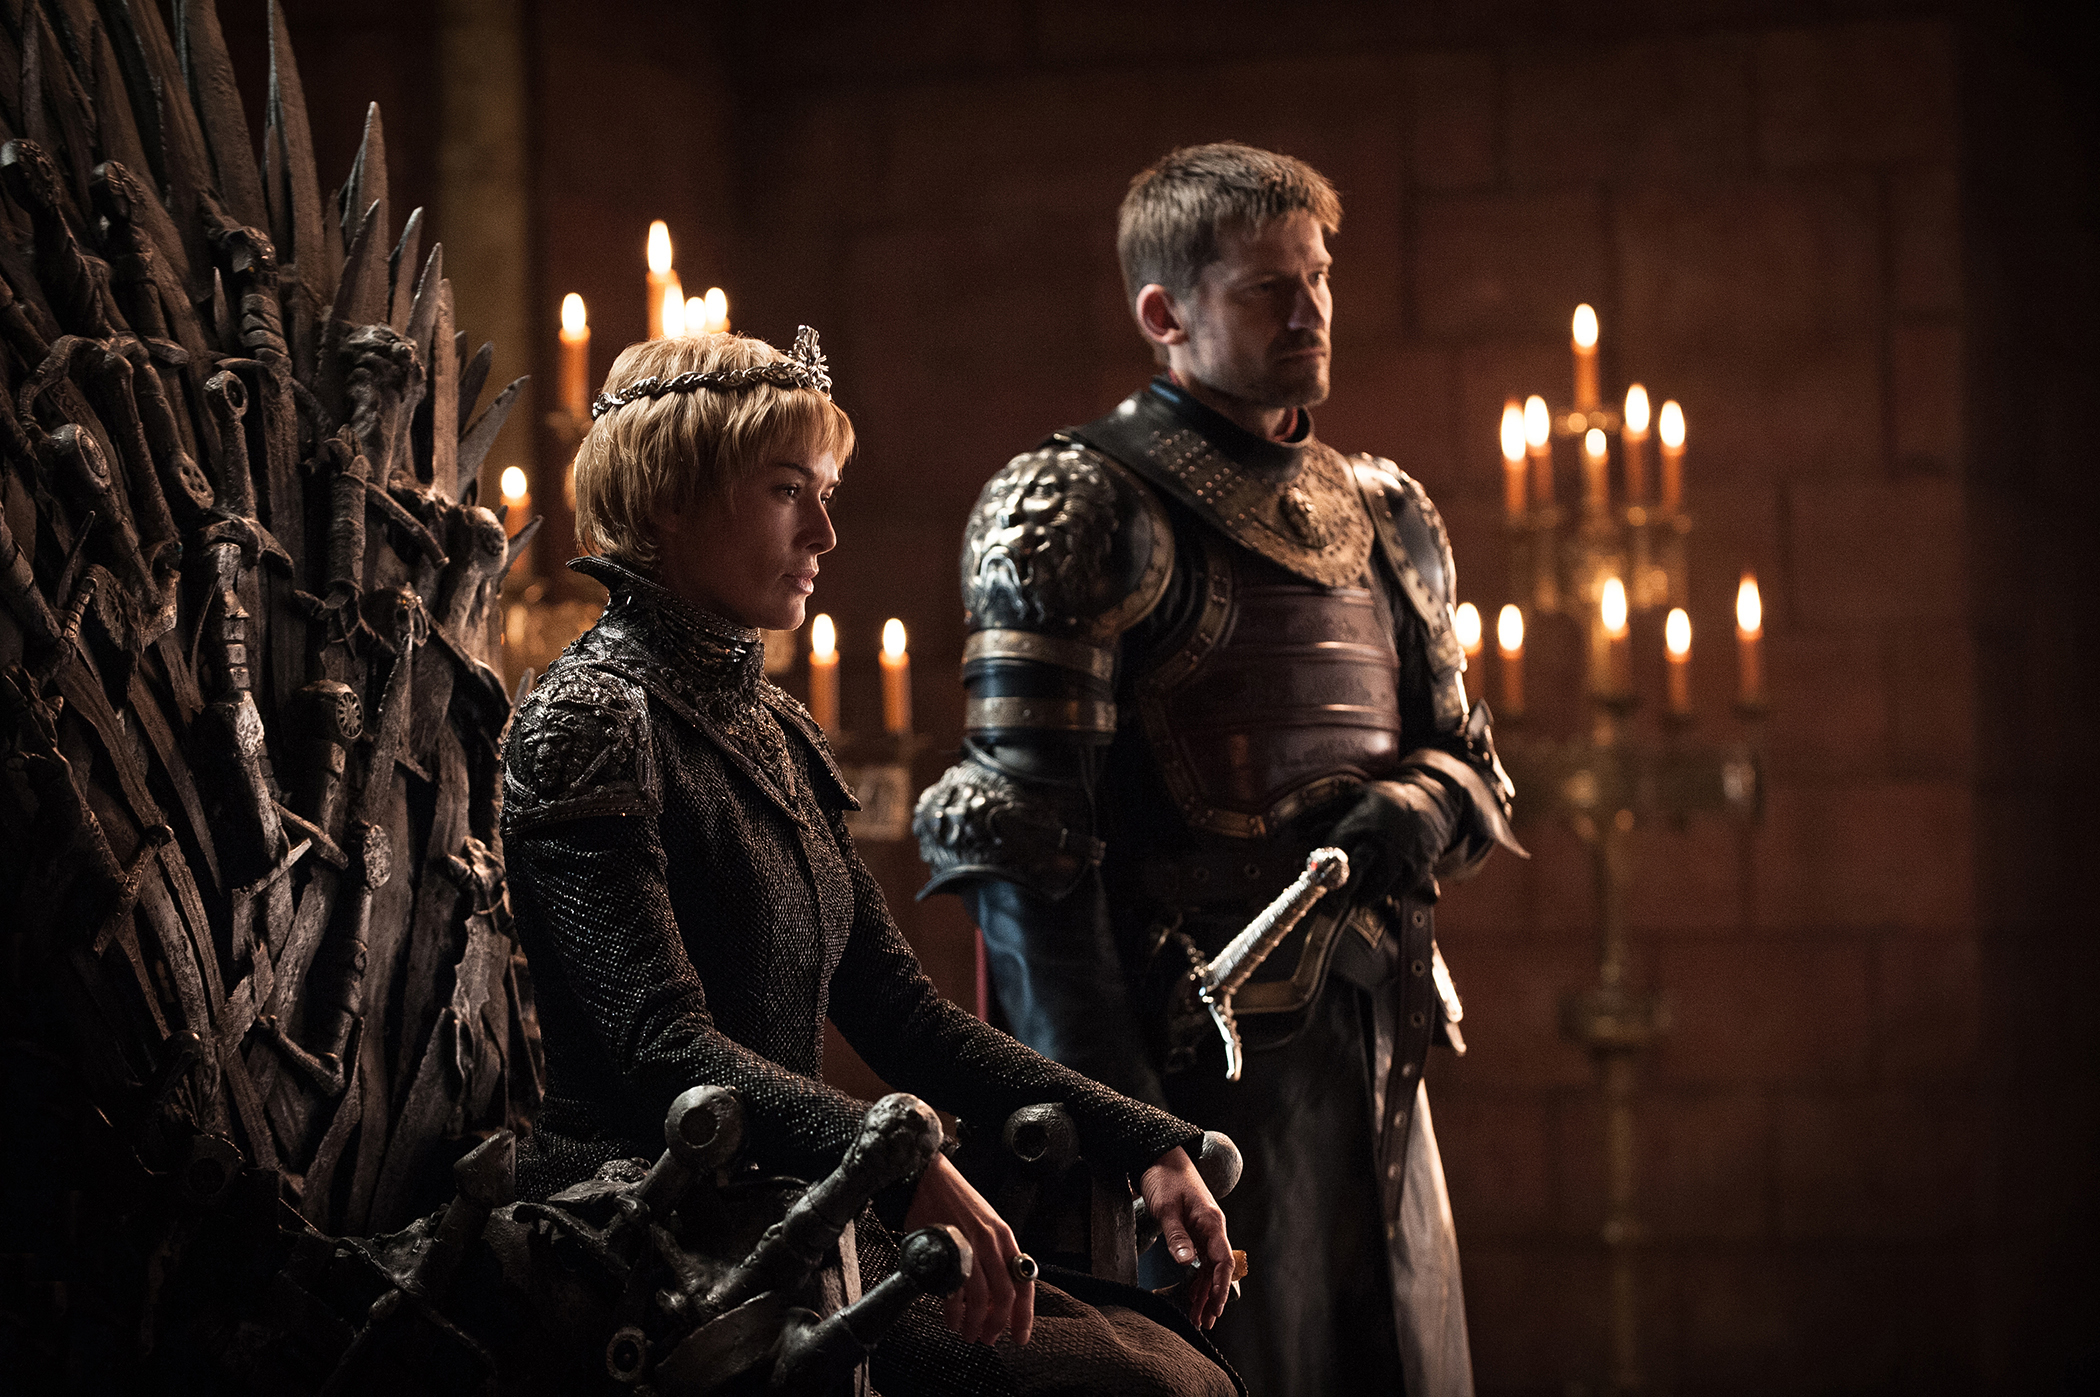 New 'Game of Thrones' Trailer Drops, Promises 'A Great War'